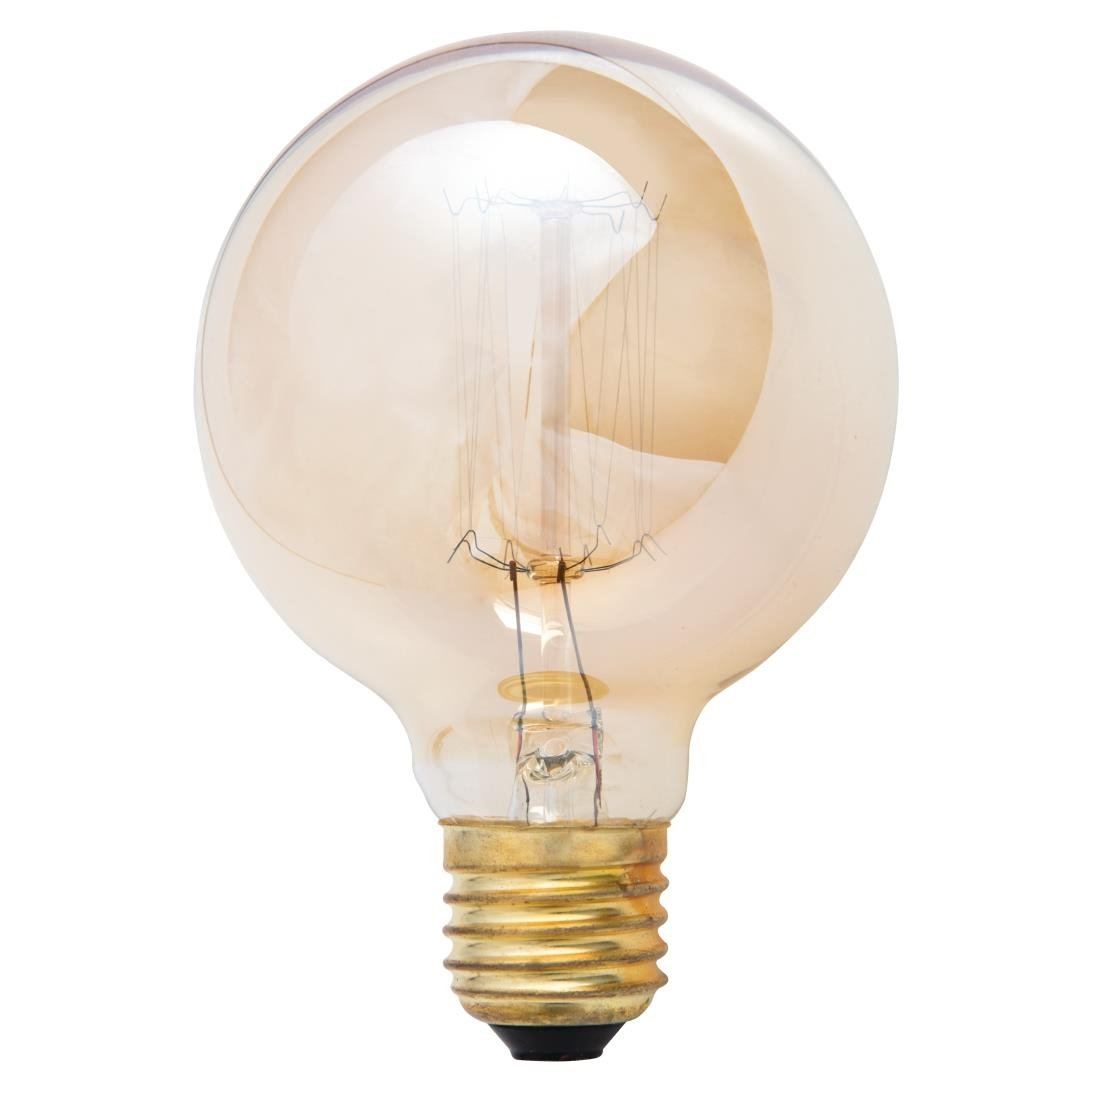 Image of Crystalite G80 Squirrel Cage Filament Antique Lamp ES 60W